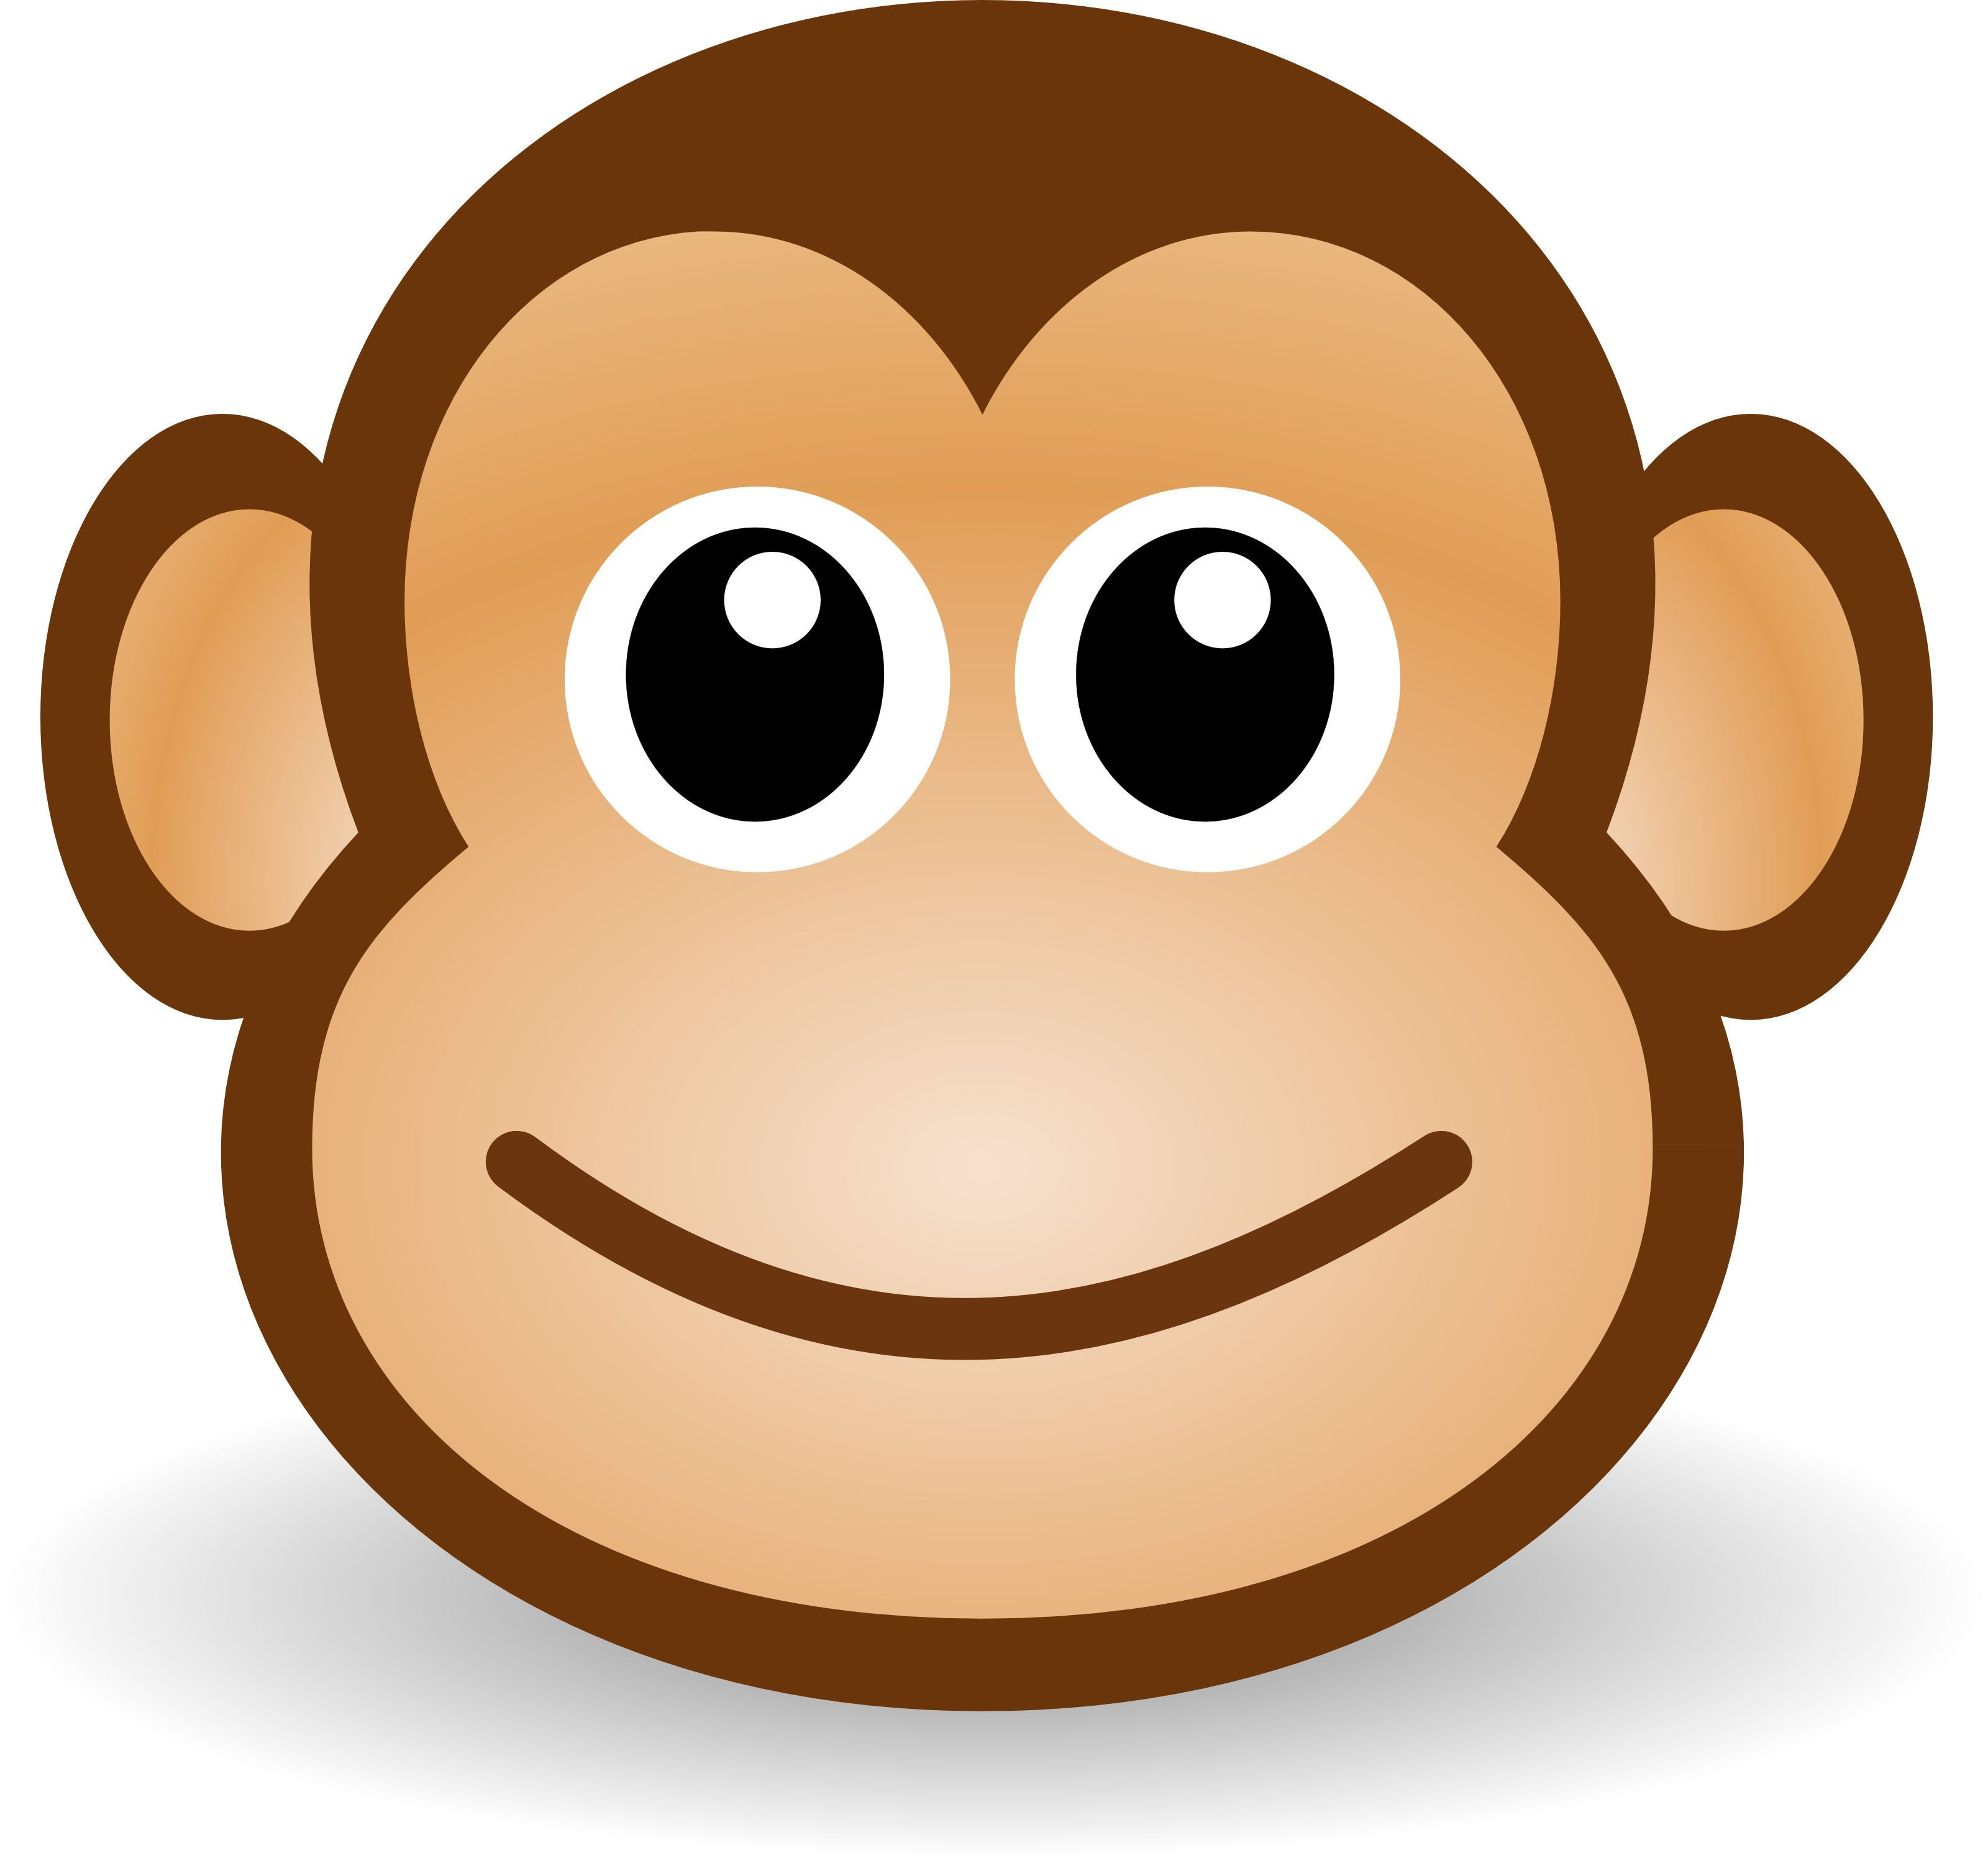 Cute Monkey Other Animals Background Wallpapers on Desktop